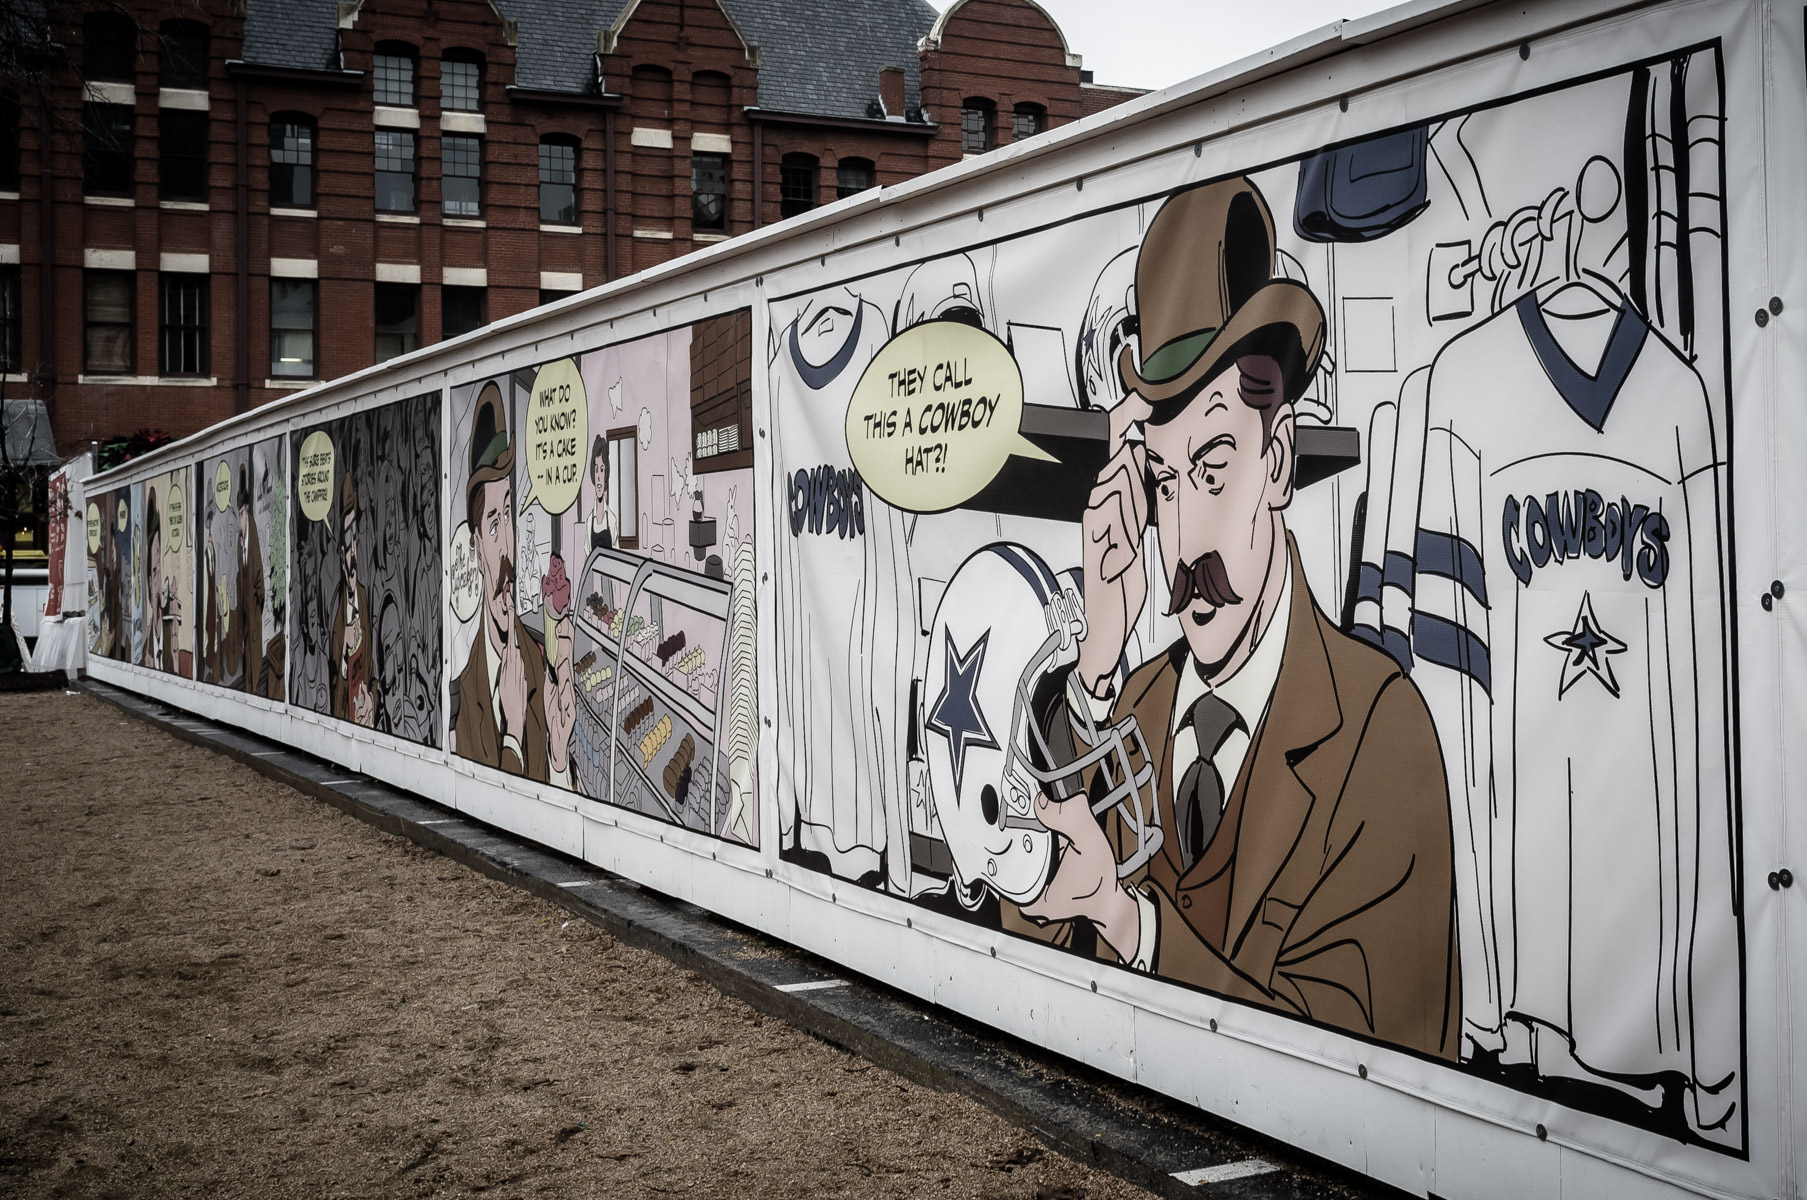 A stylized comic strip printed on a construction wall, spotted in Fort Worth, Texas.